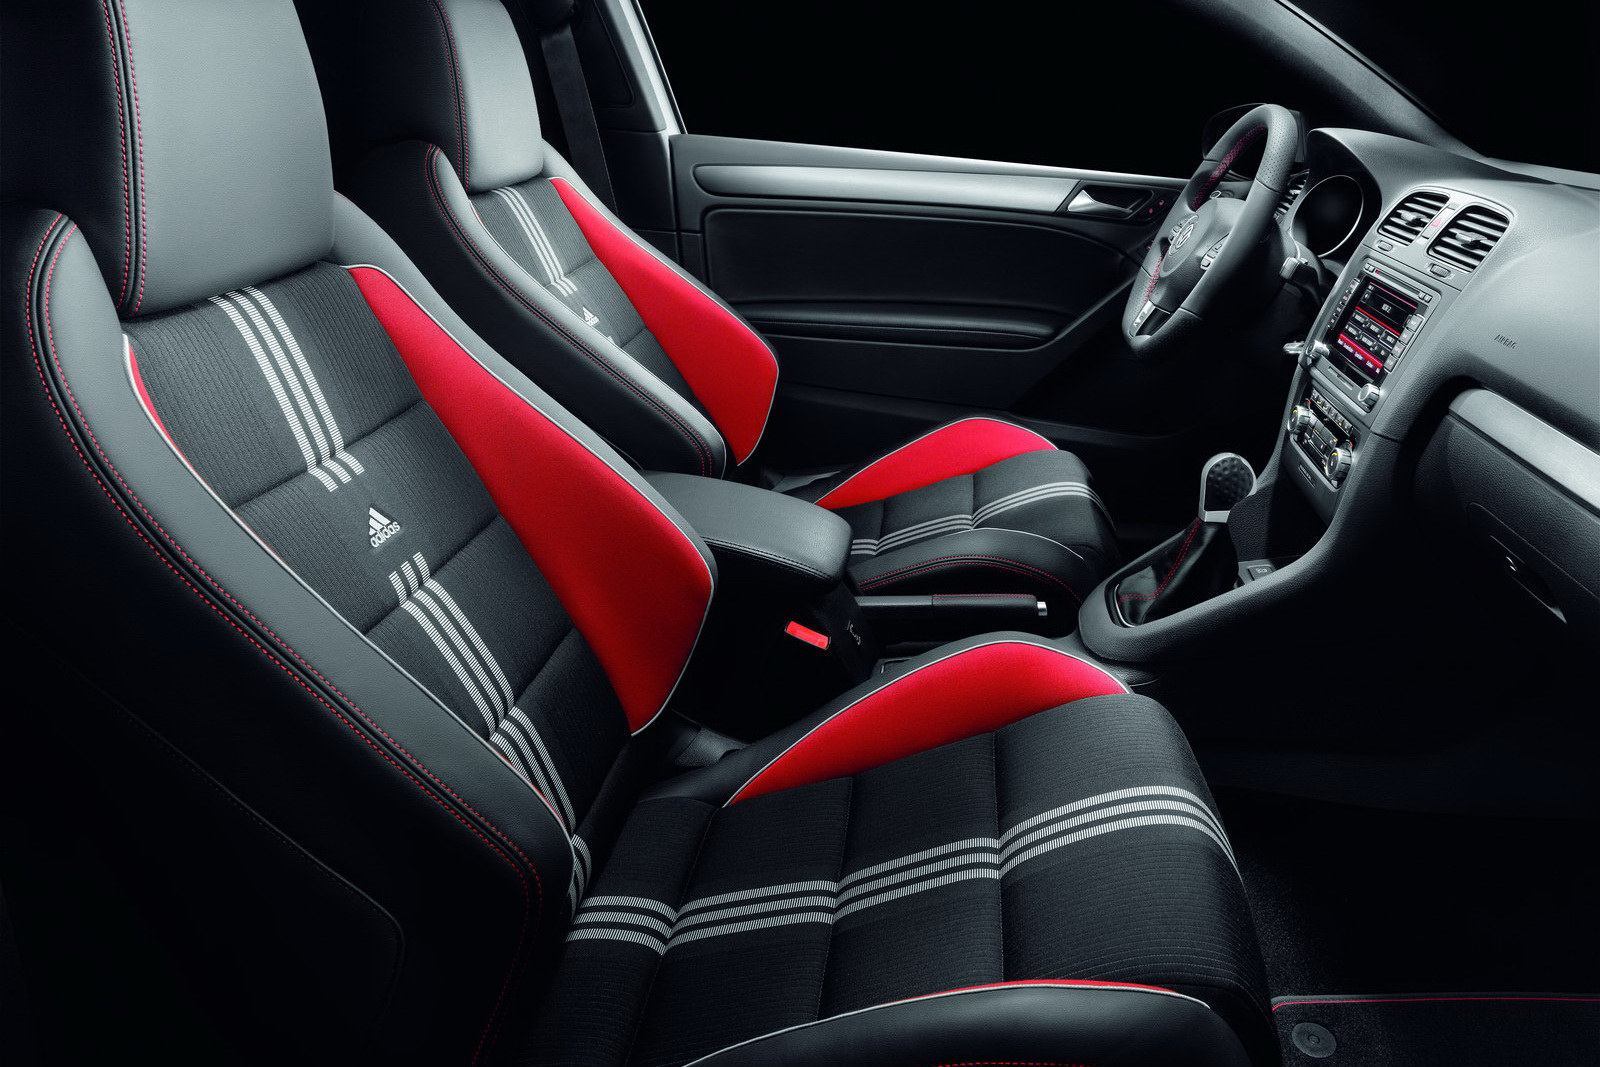 Vw Golf Gti Adidas Special Unveiled Goes On Sale In The U